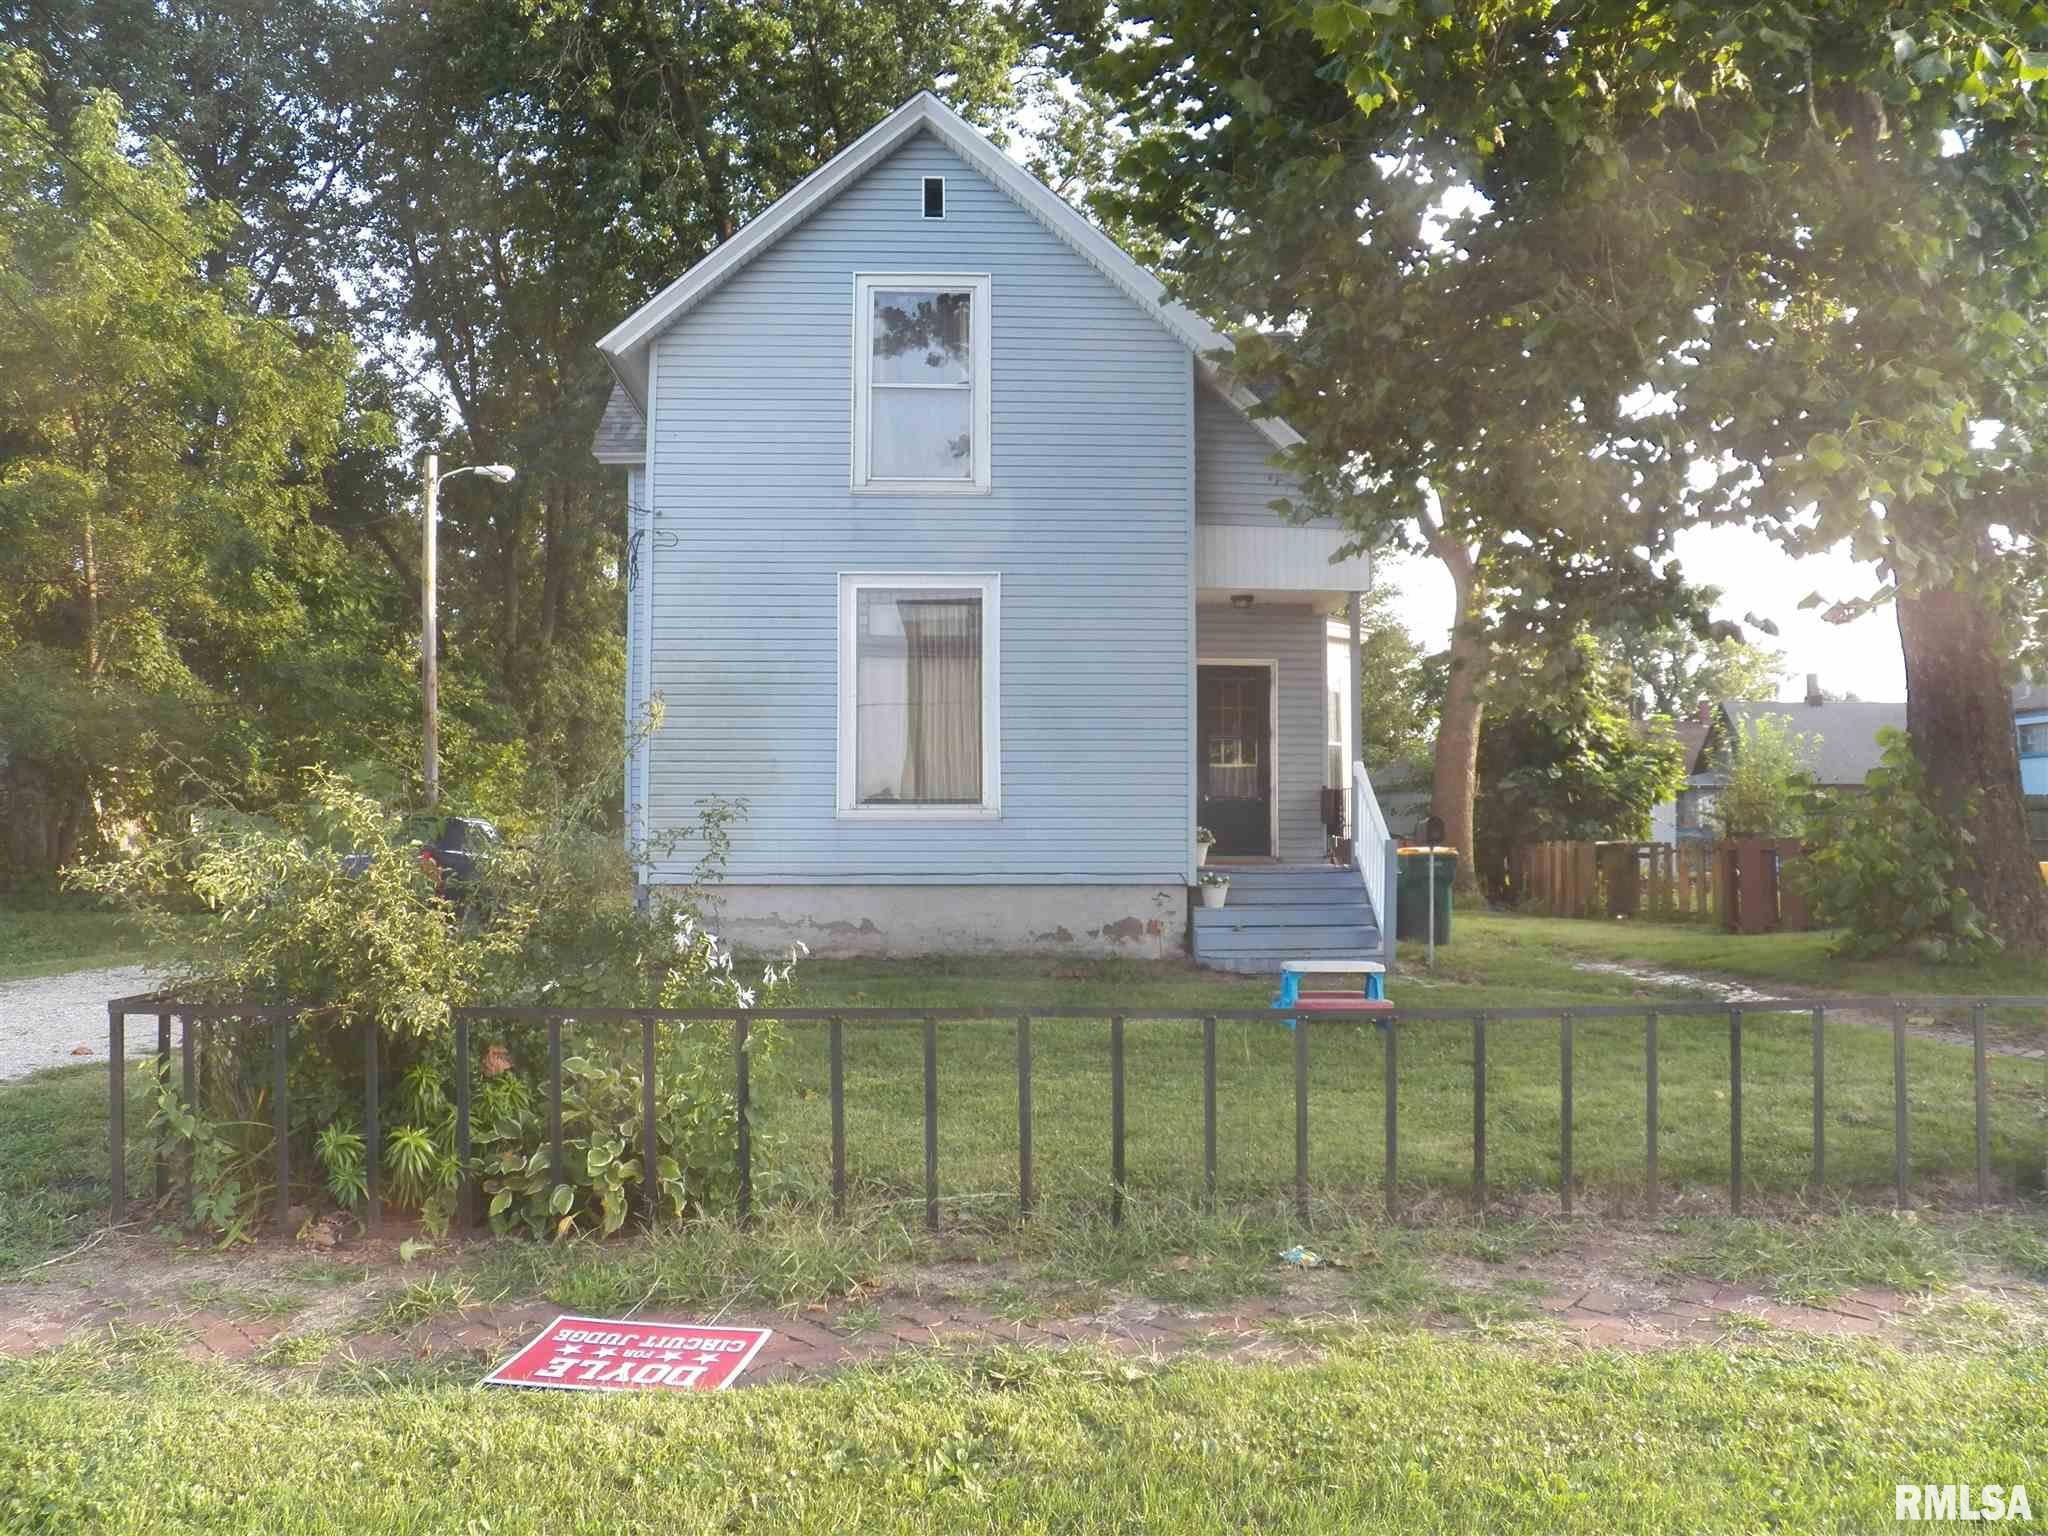 640 MULBERRY Property Photo - Galesburg, IL real estate listing